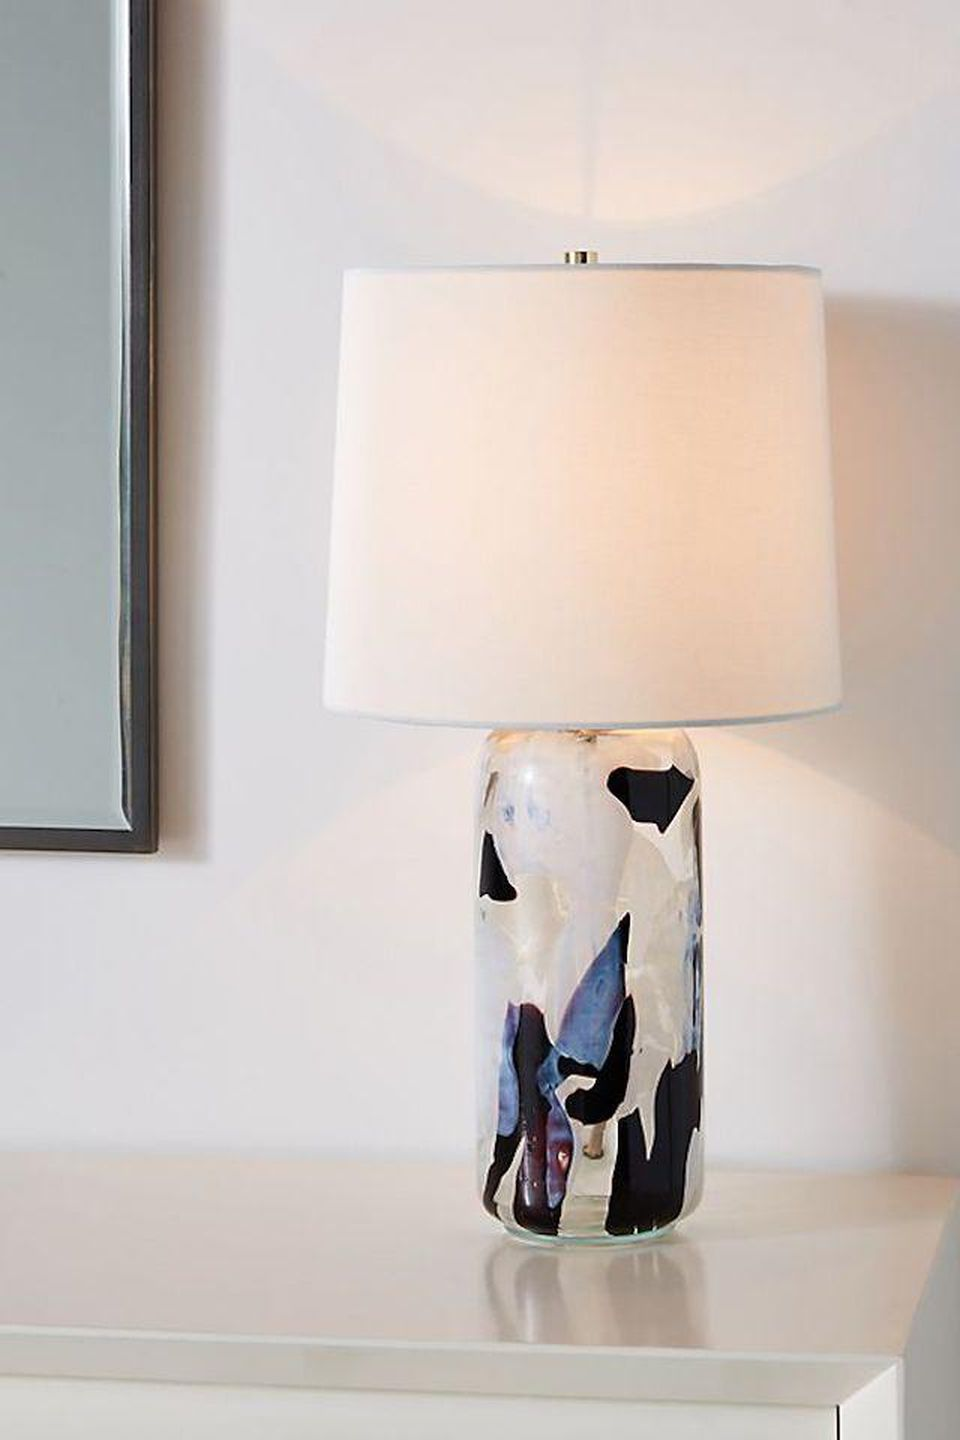 https_%2F%2Fblogs-images.forbes.com%2Fforbes-finds%2Ffiles%2F2019%2F03%2FAnthropologie-Lola-Glass-Table-Lamp-.jpg